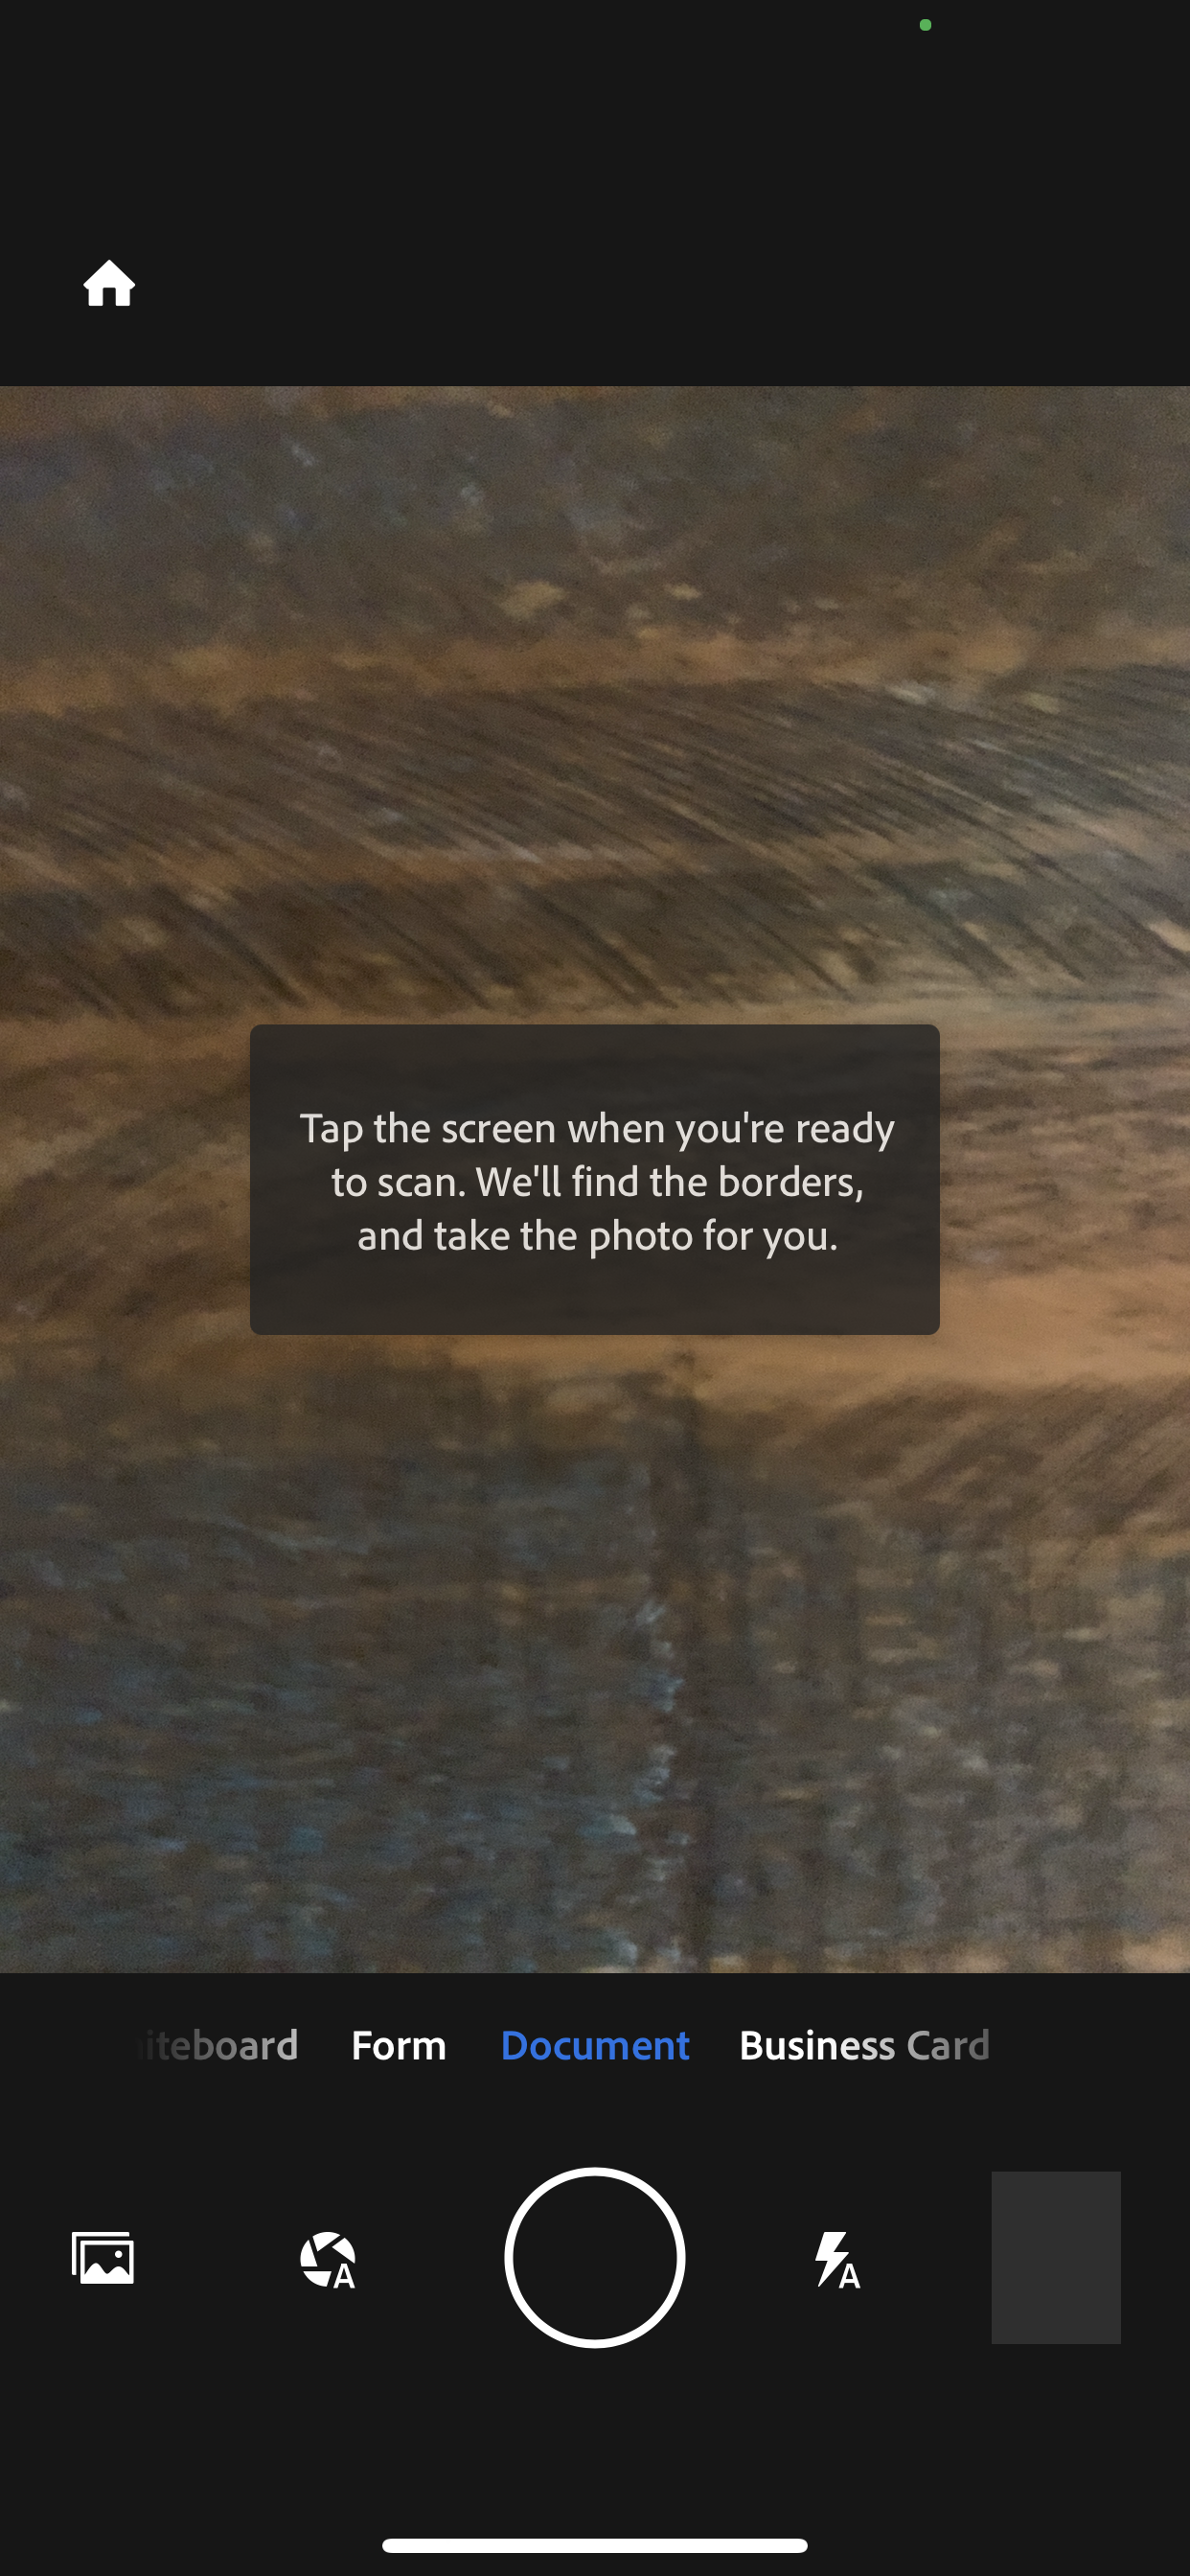 Activated Camera in Document Mode